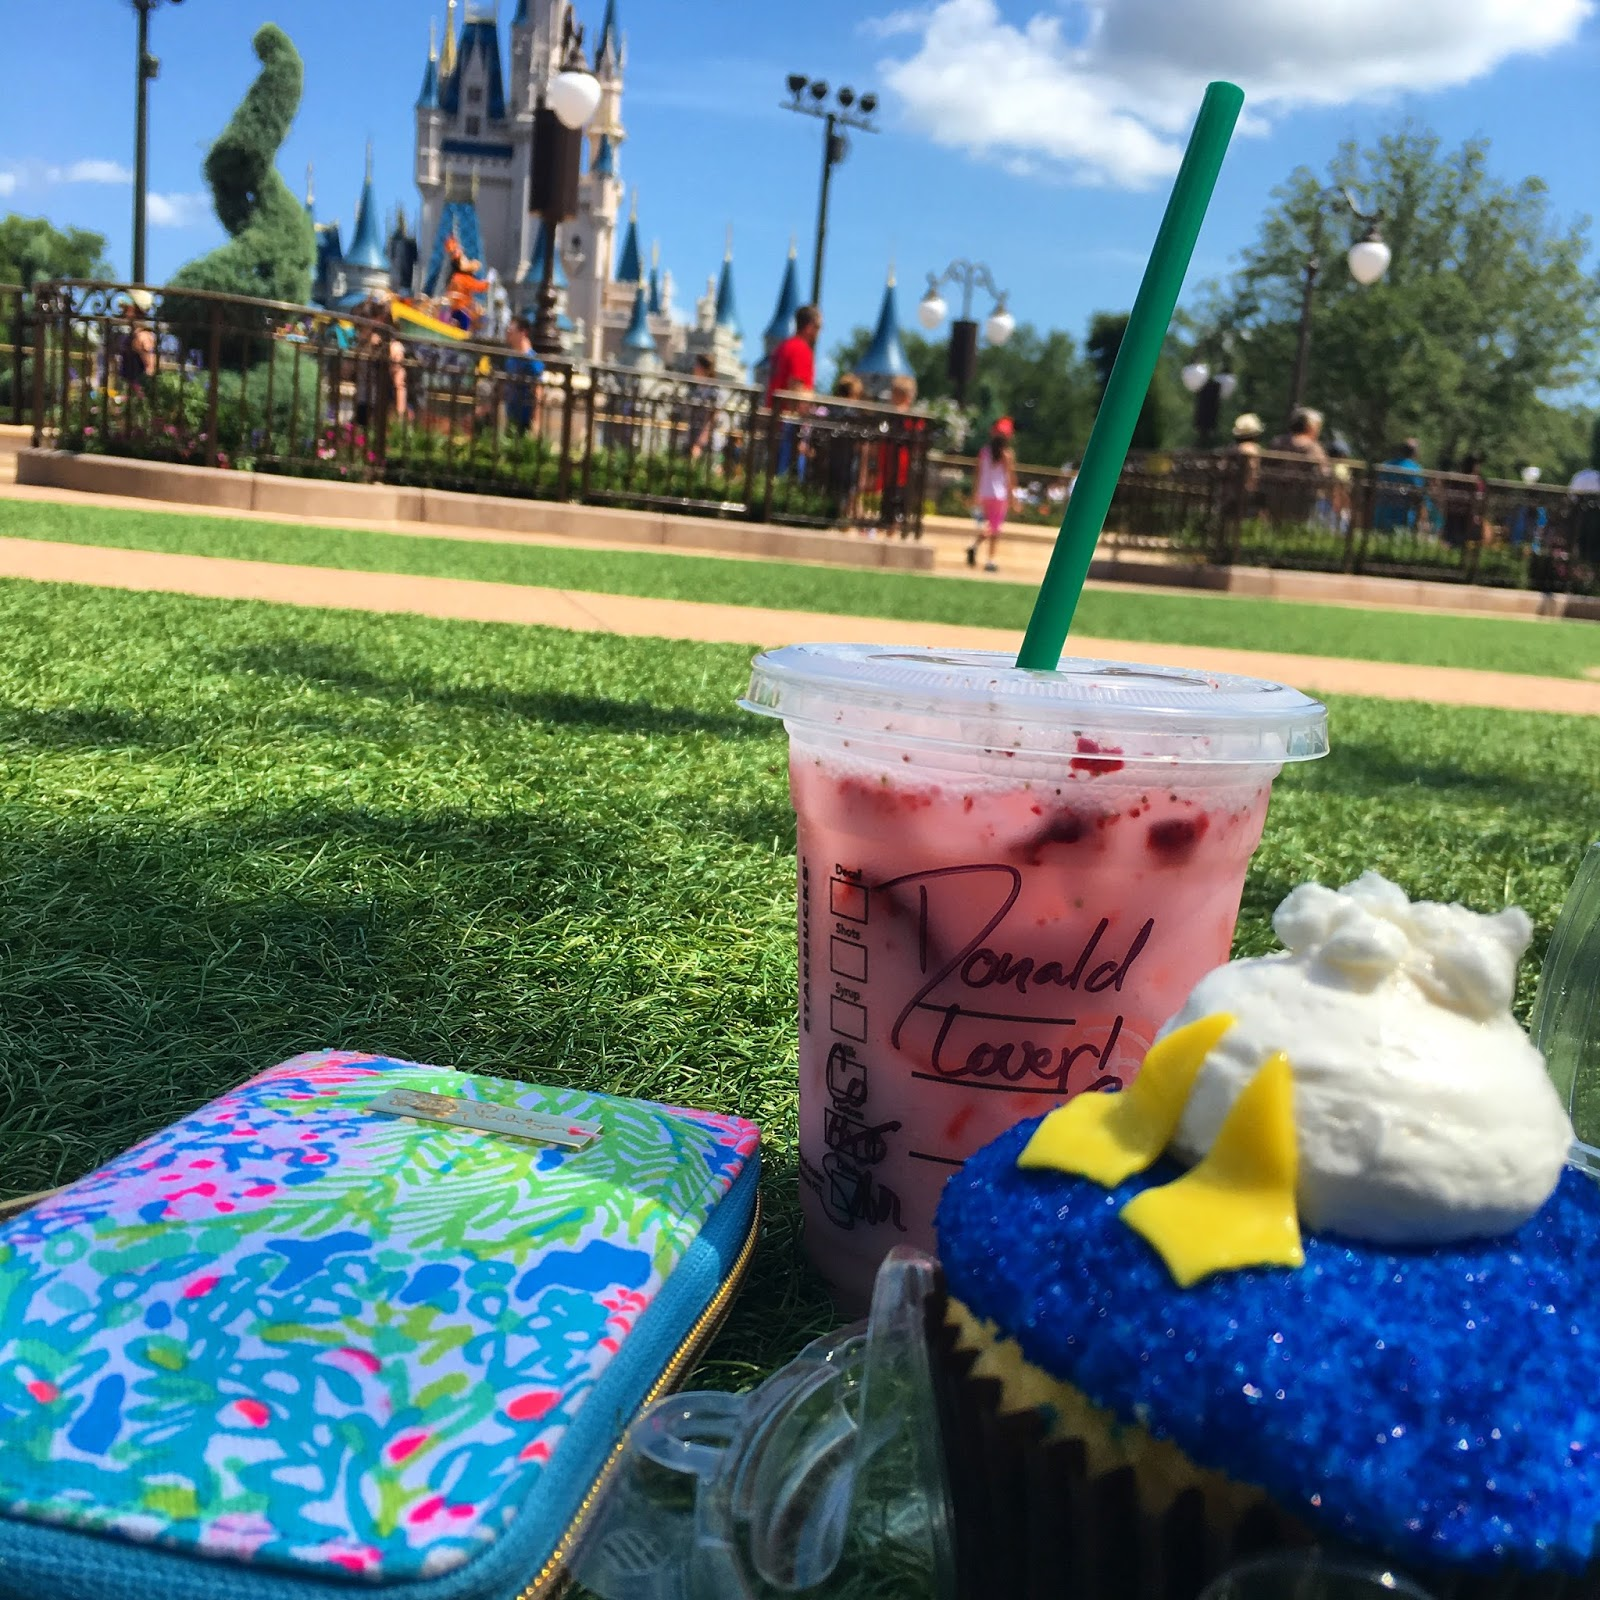 Lily Pulitzer Starbucks Dressing For Disney Weekend Wear Abouts Memorial Day